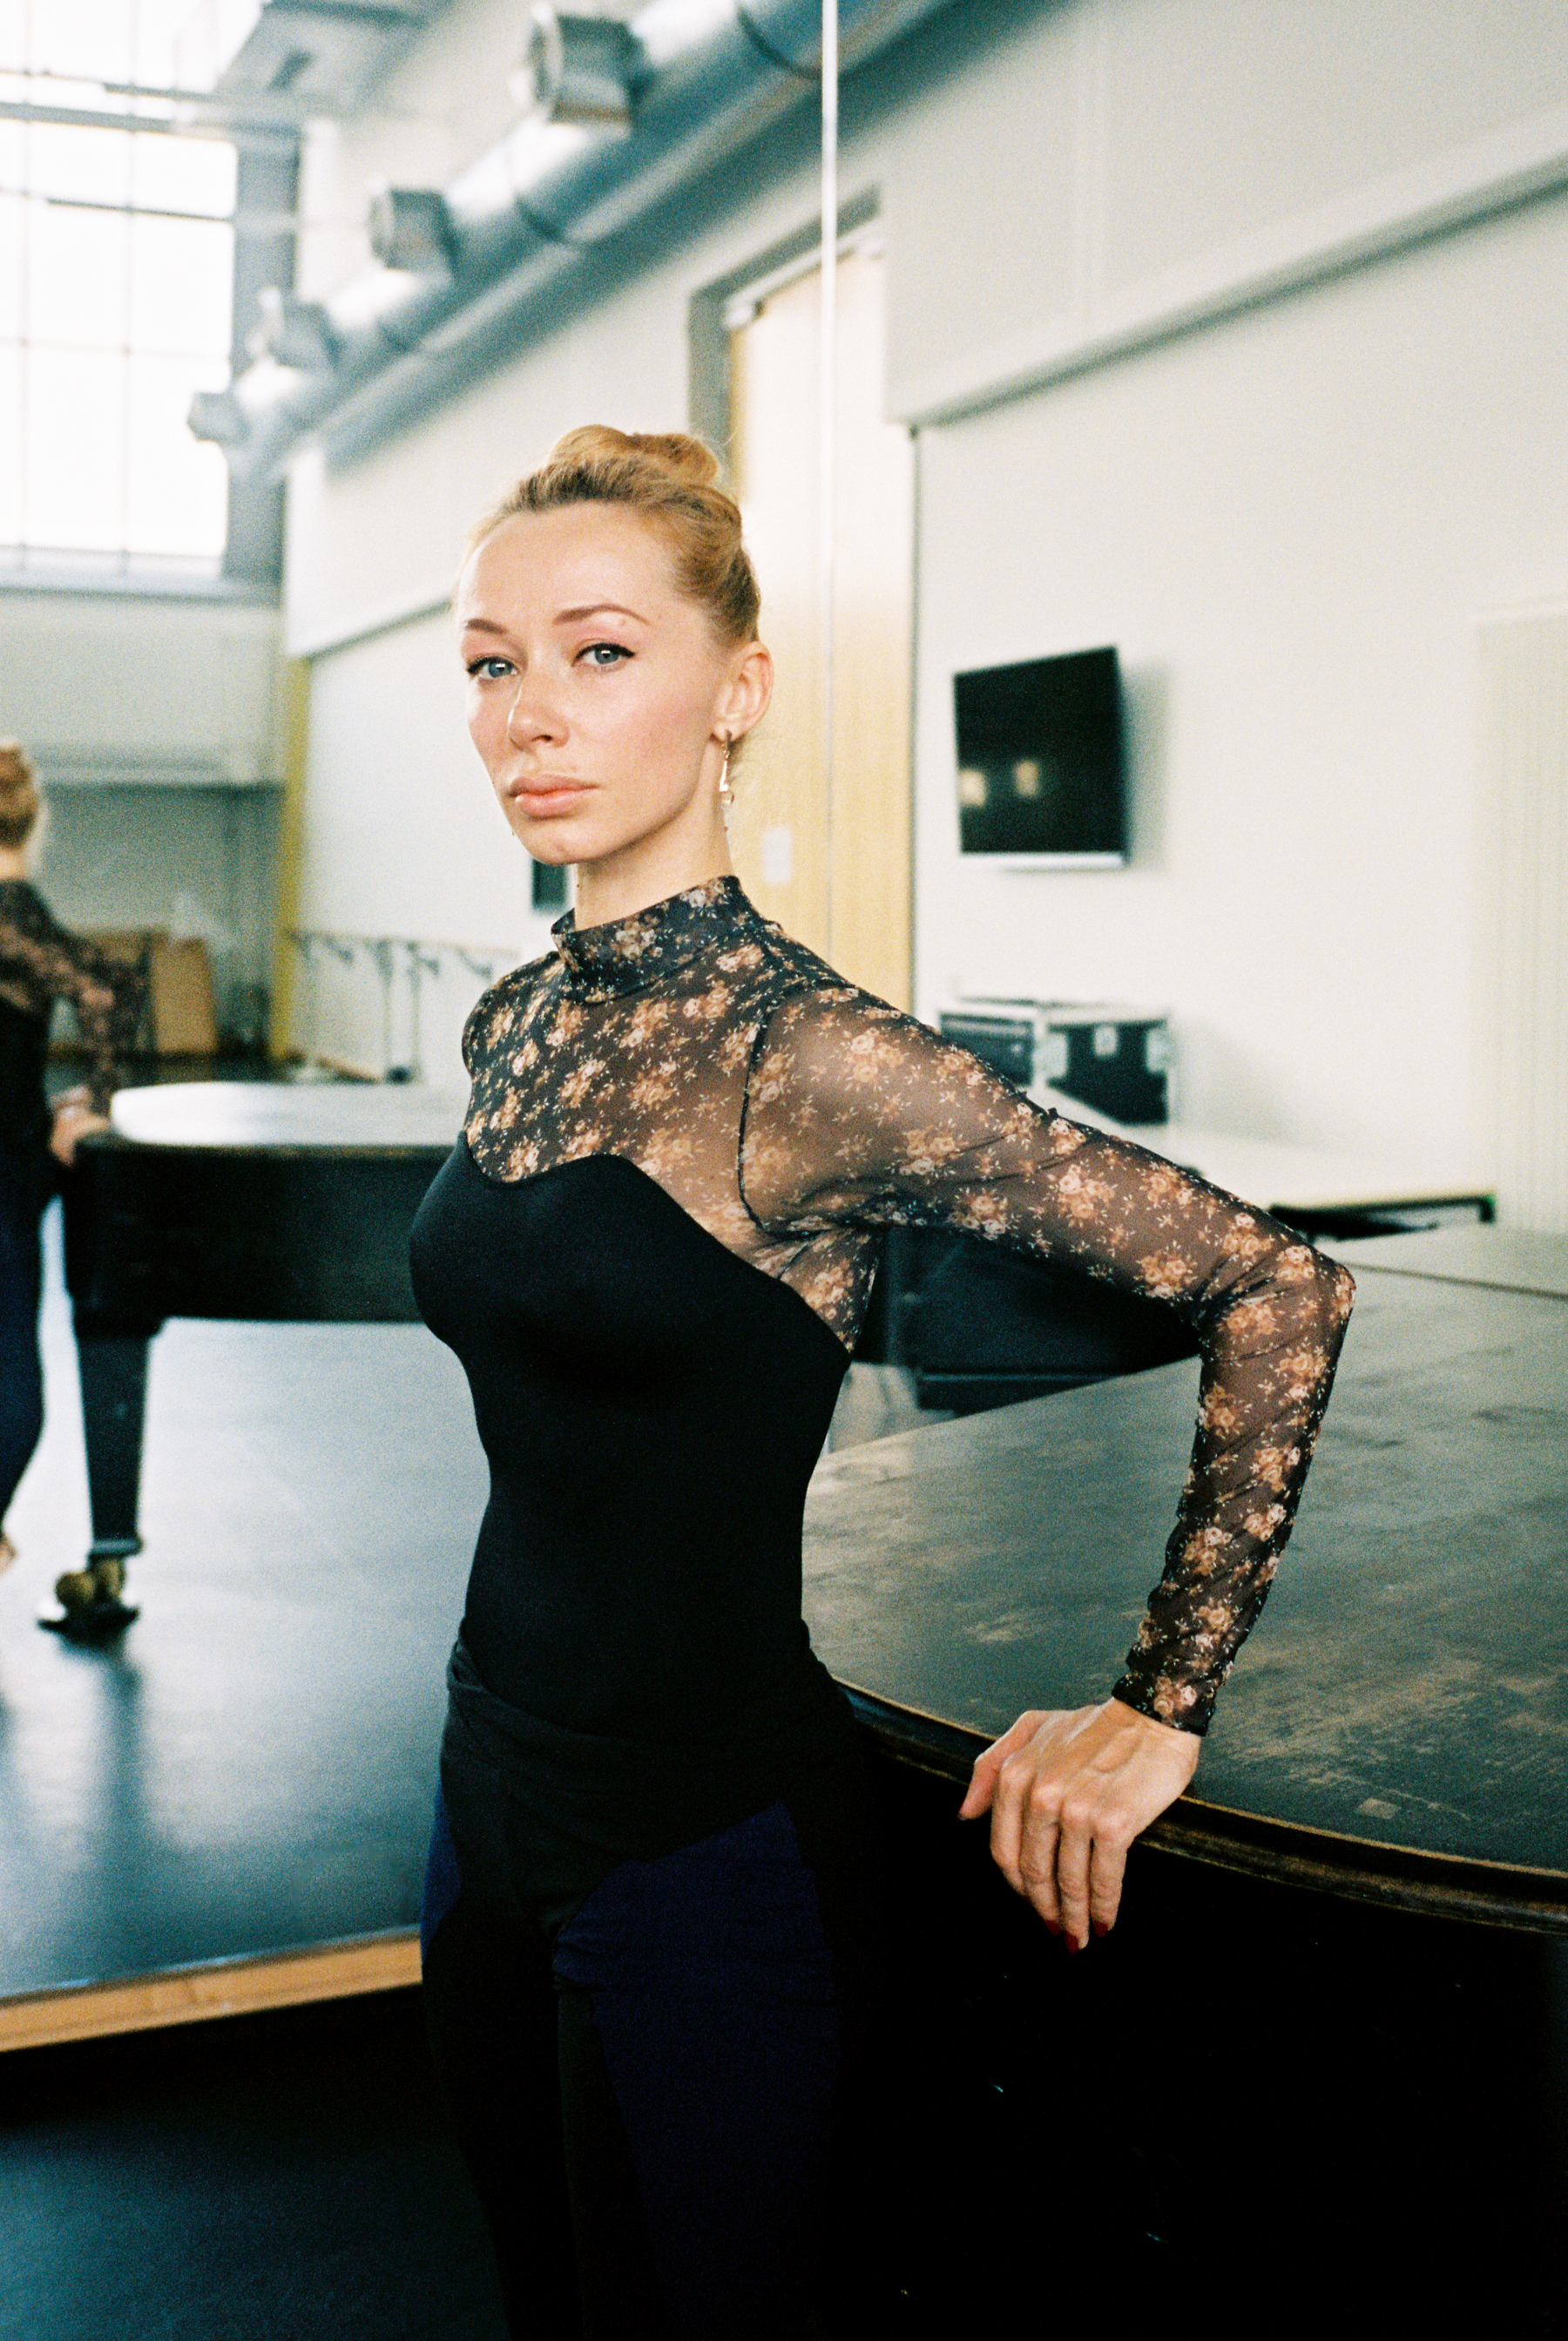 Rules of Dance: Iana Salenko